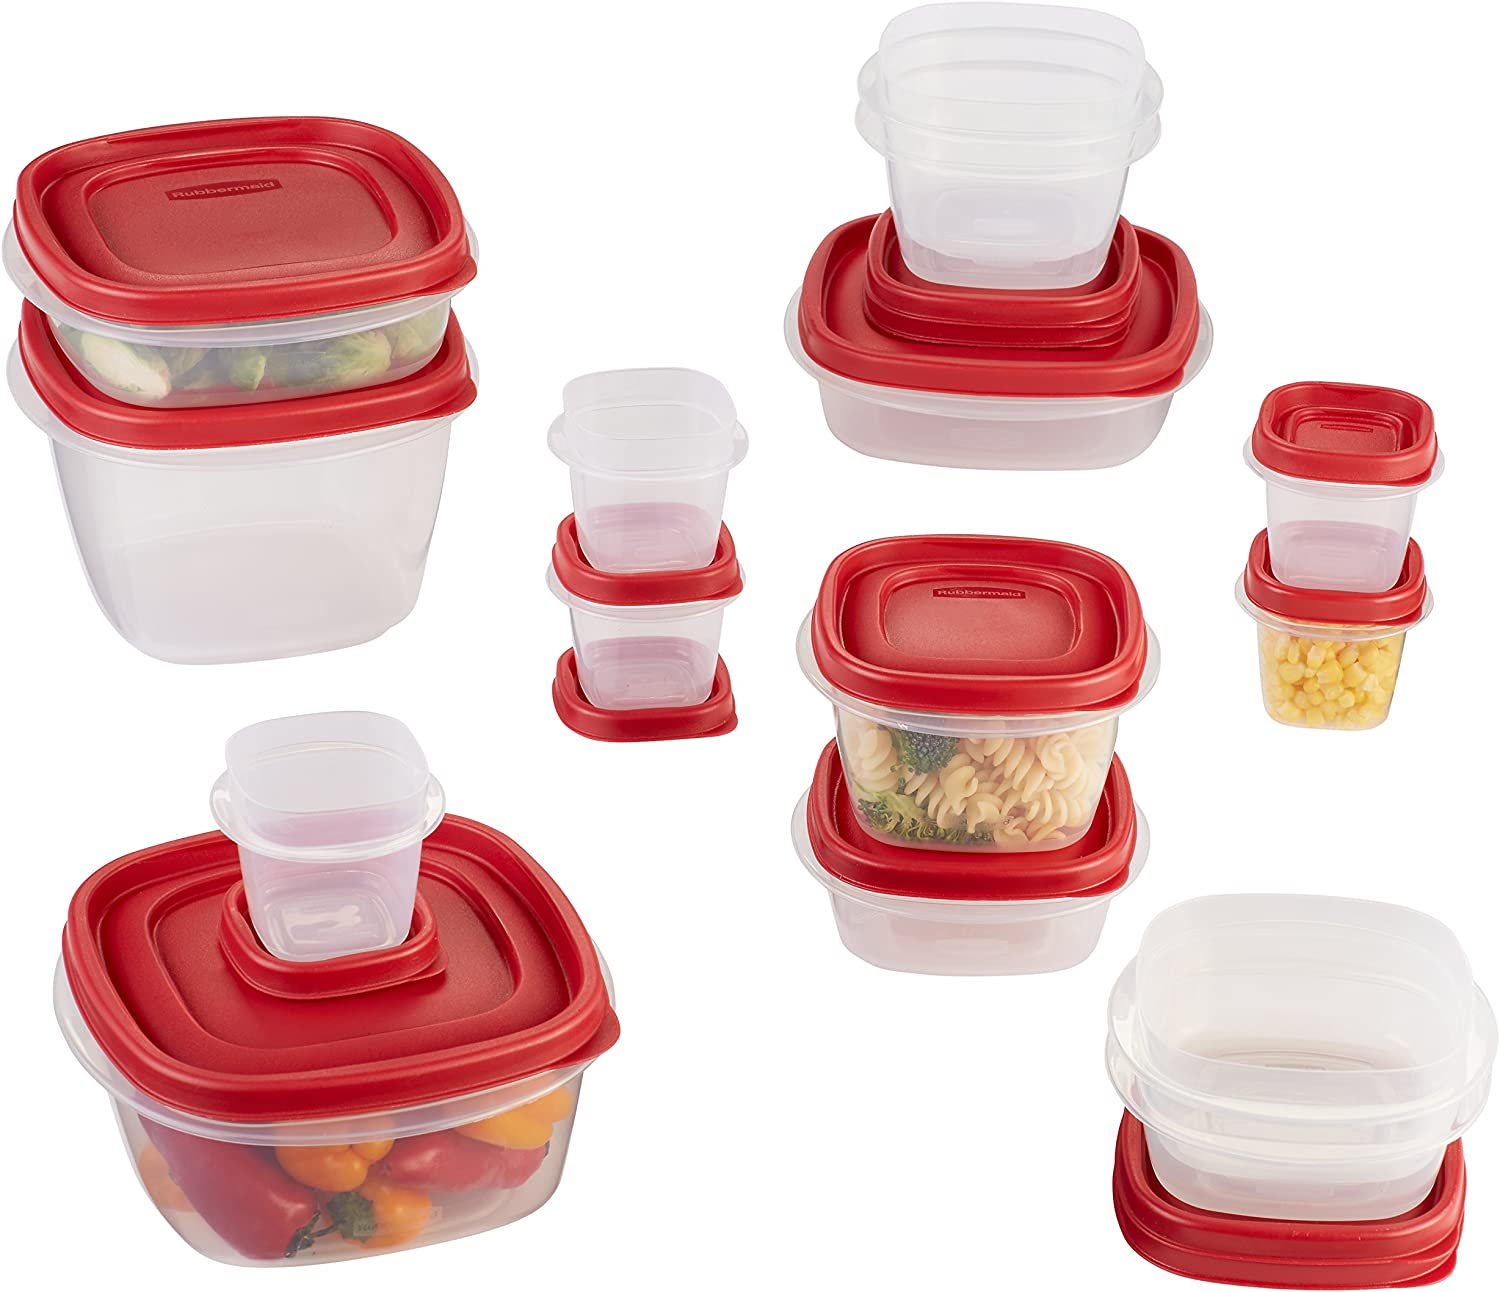 Rubbermaid Easy Find Lids Food Storage Containers, Racer Red, 30-Piece Set 1887941